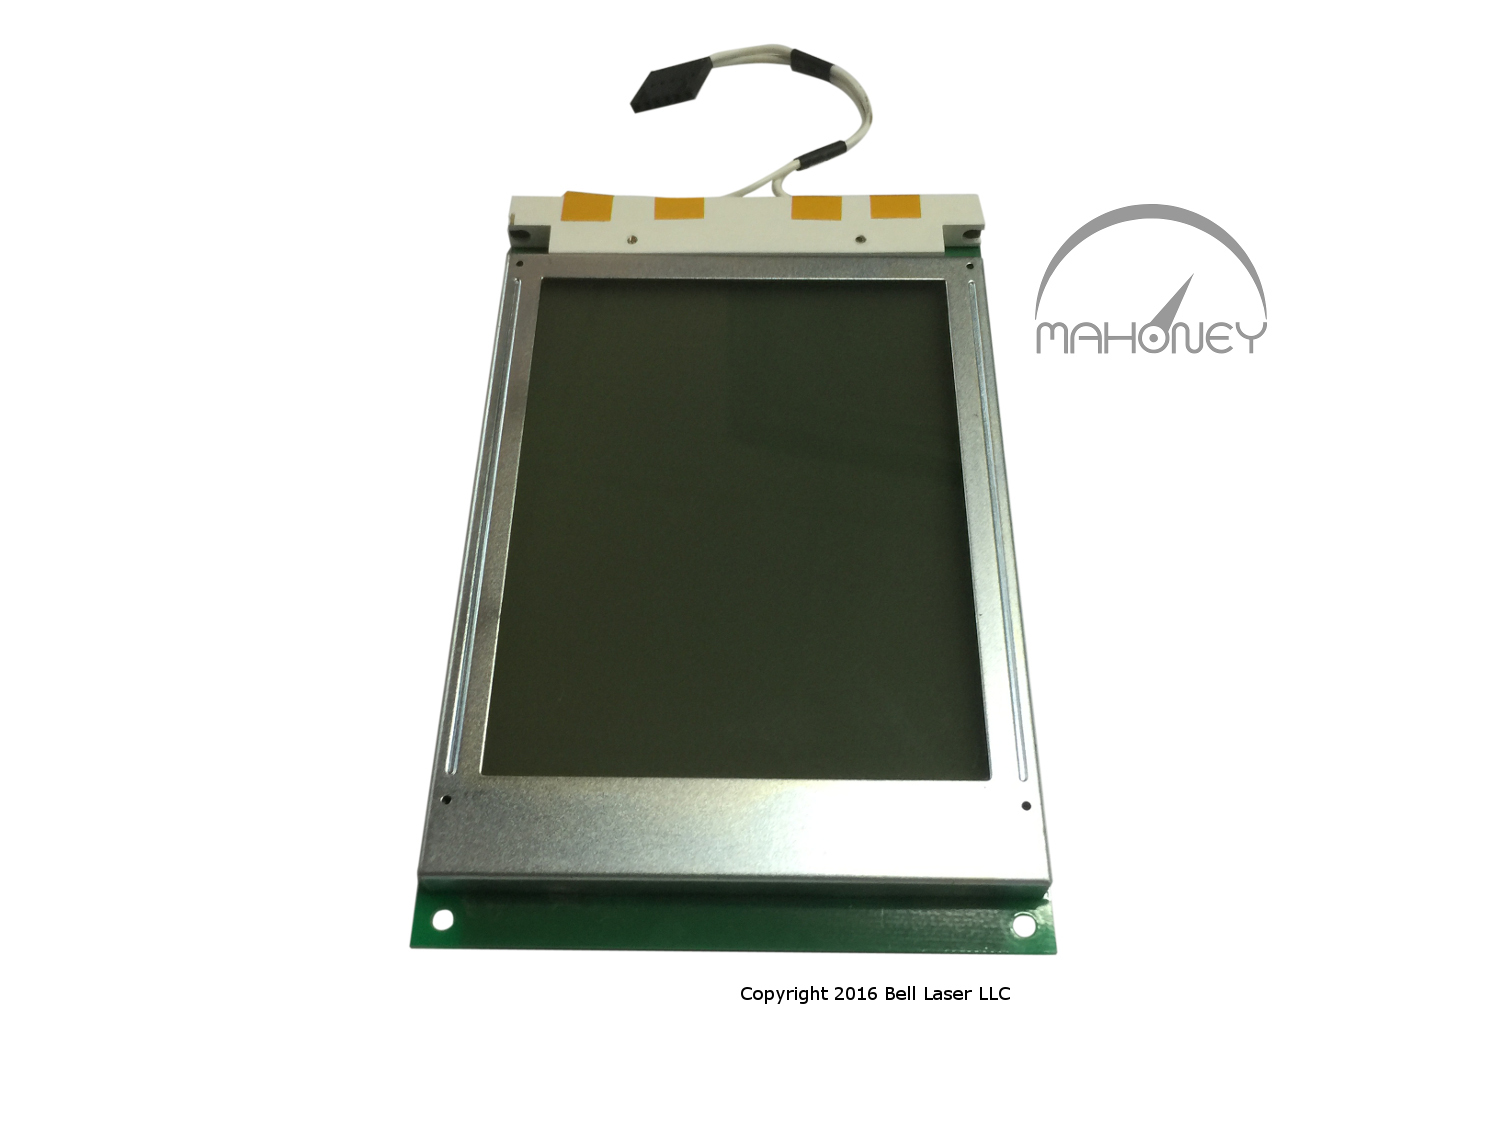 Epilog_Laser_LCD_display_Mahoney